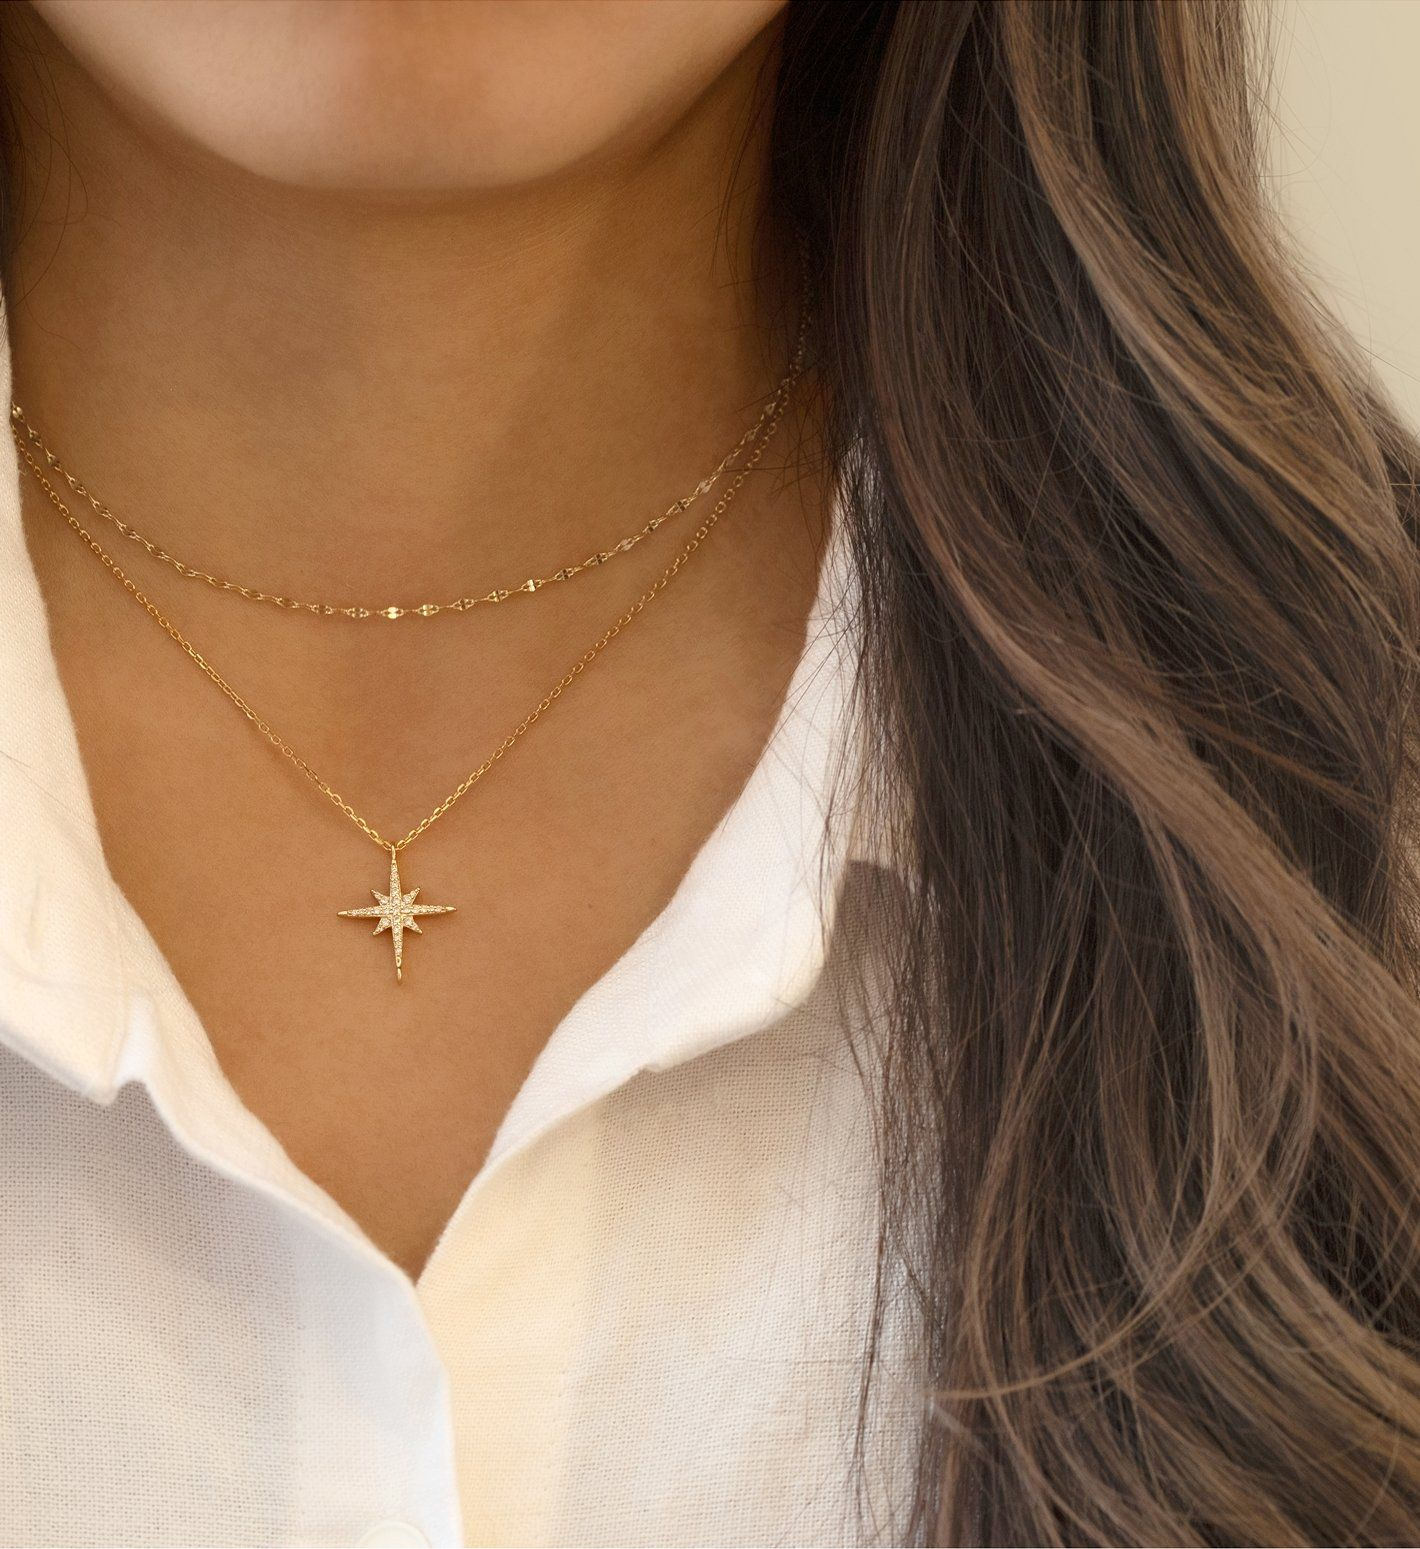 sandal dainty stainless steel SUMMER NECKLACE jewelry was plated real gold delicate necklace thin chain